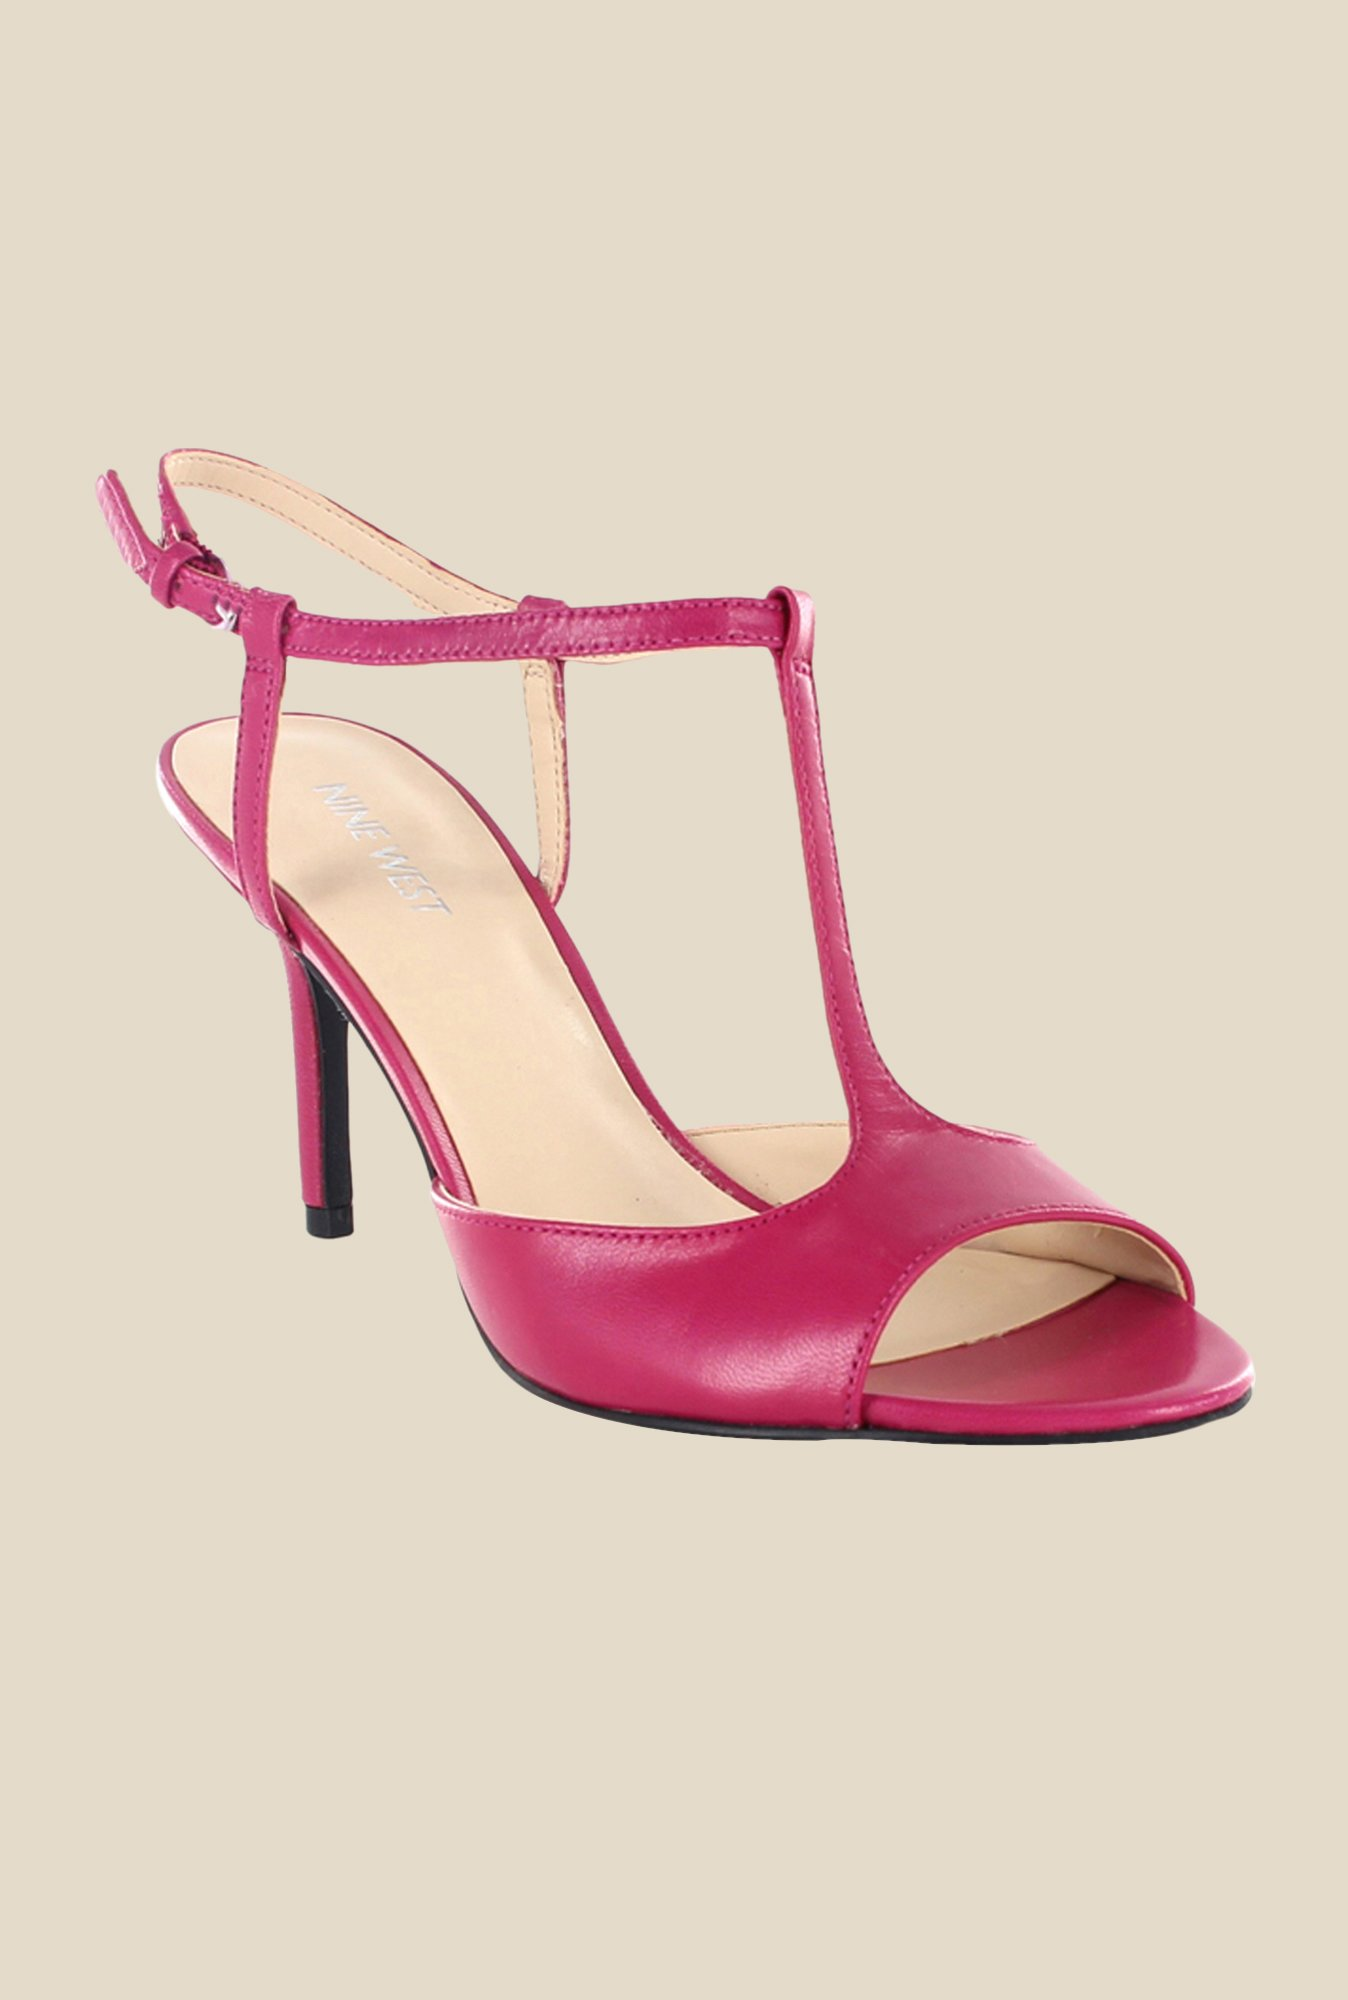 Nine West Pink Back Strap Sandals